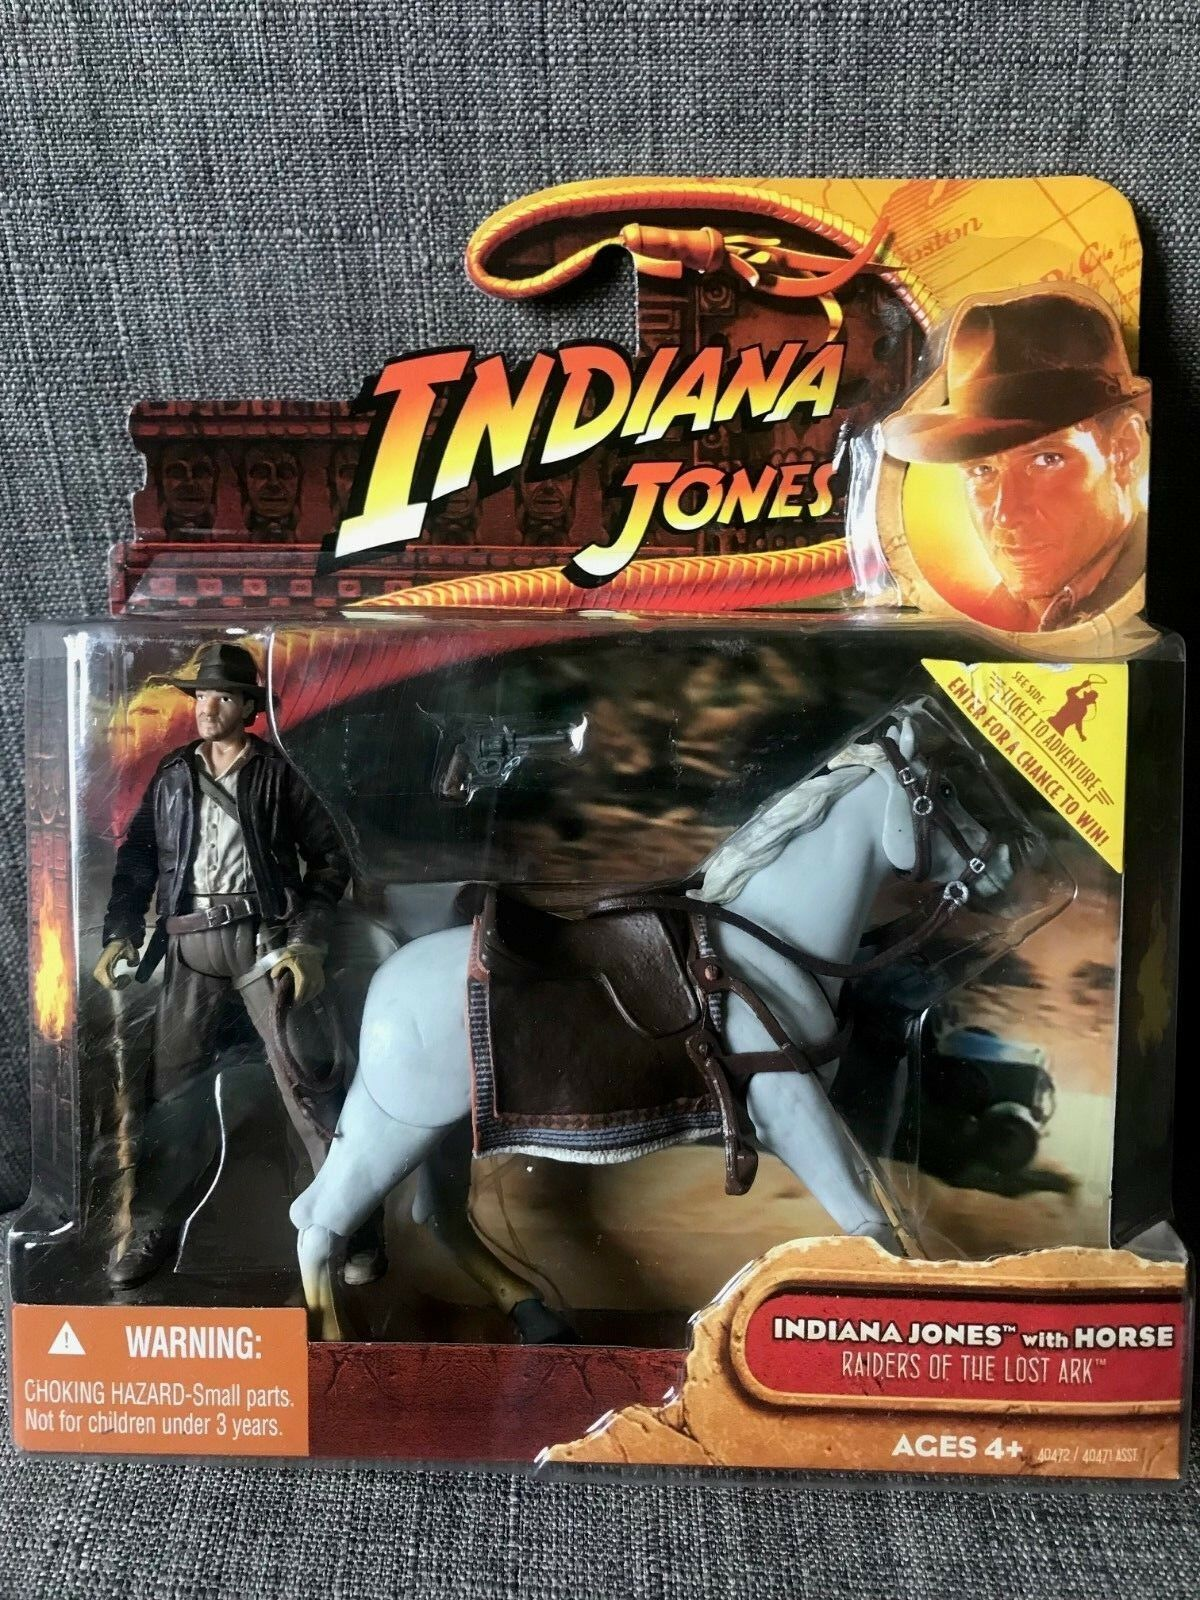 Indiana Jones with Horse Raiders of of of the Lost Ark 2008 New   Sealed Box   e40565